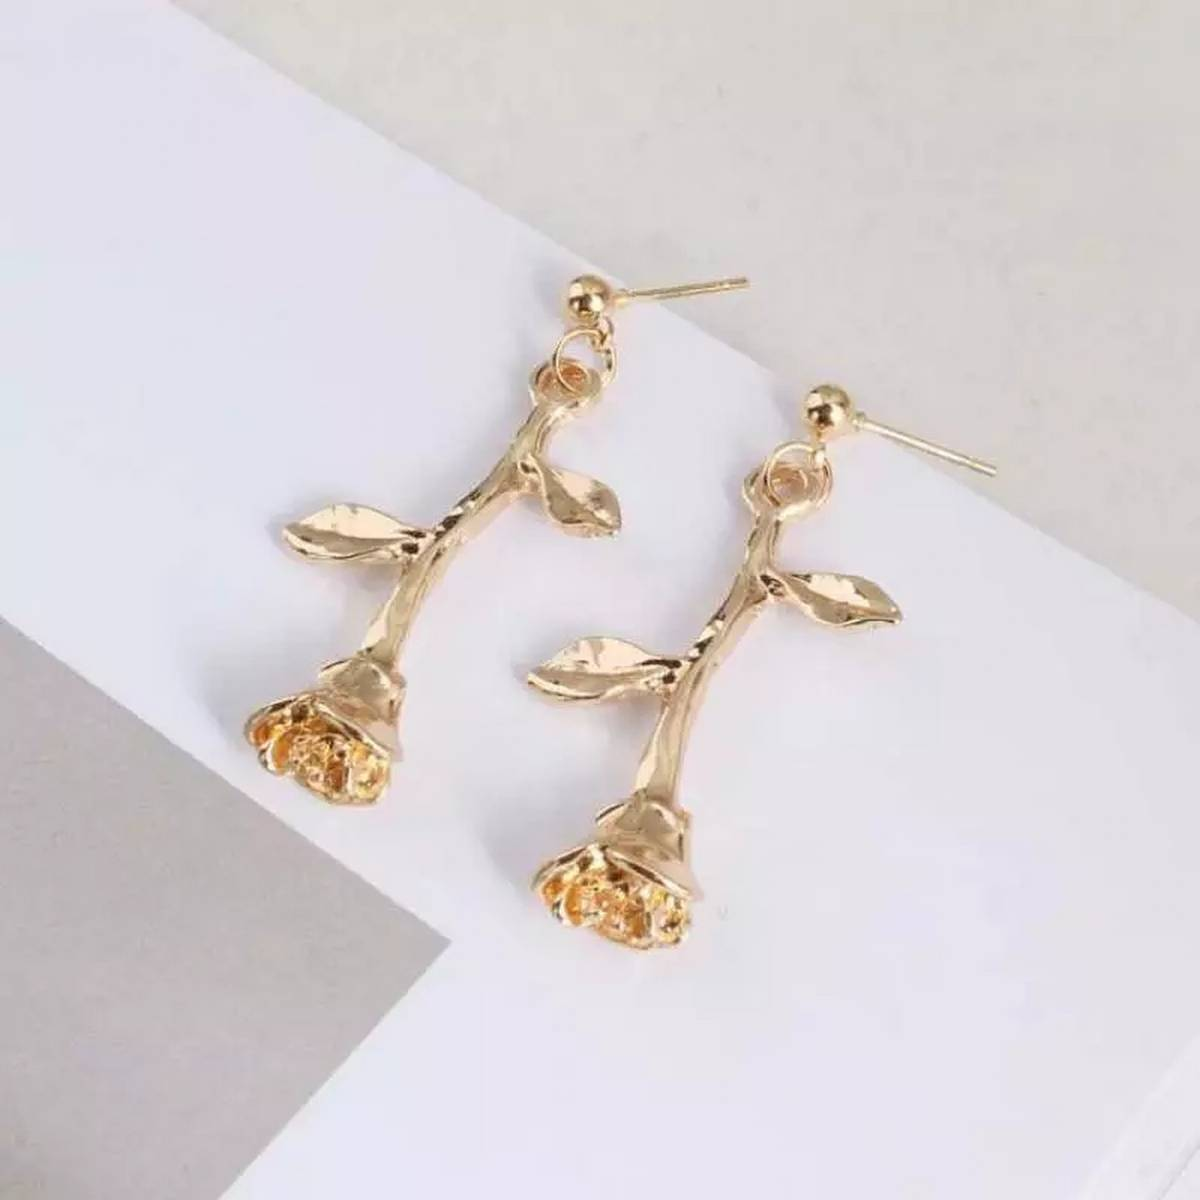 New Fashion Romantic Delicate Rose Flower Earrings Charm Gold Color Rose Jewelry Metal Tree Branches Earrings For Women Girls Gift